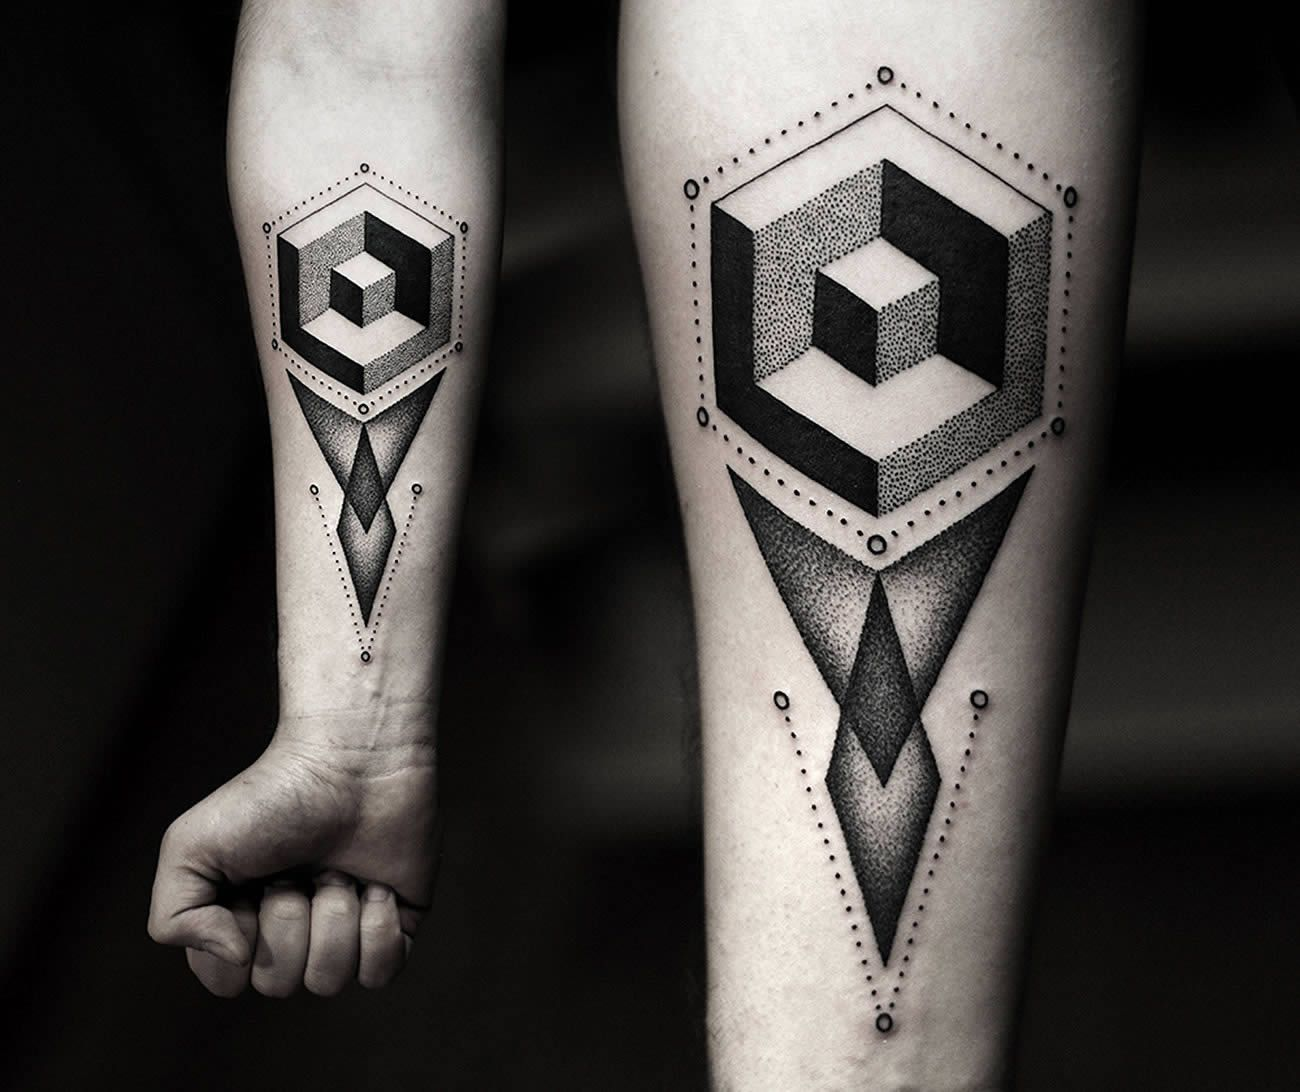 kamil czapiga's dot and black work | amazing tattoos! | pinterest